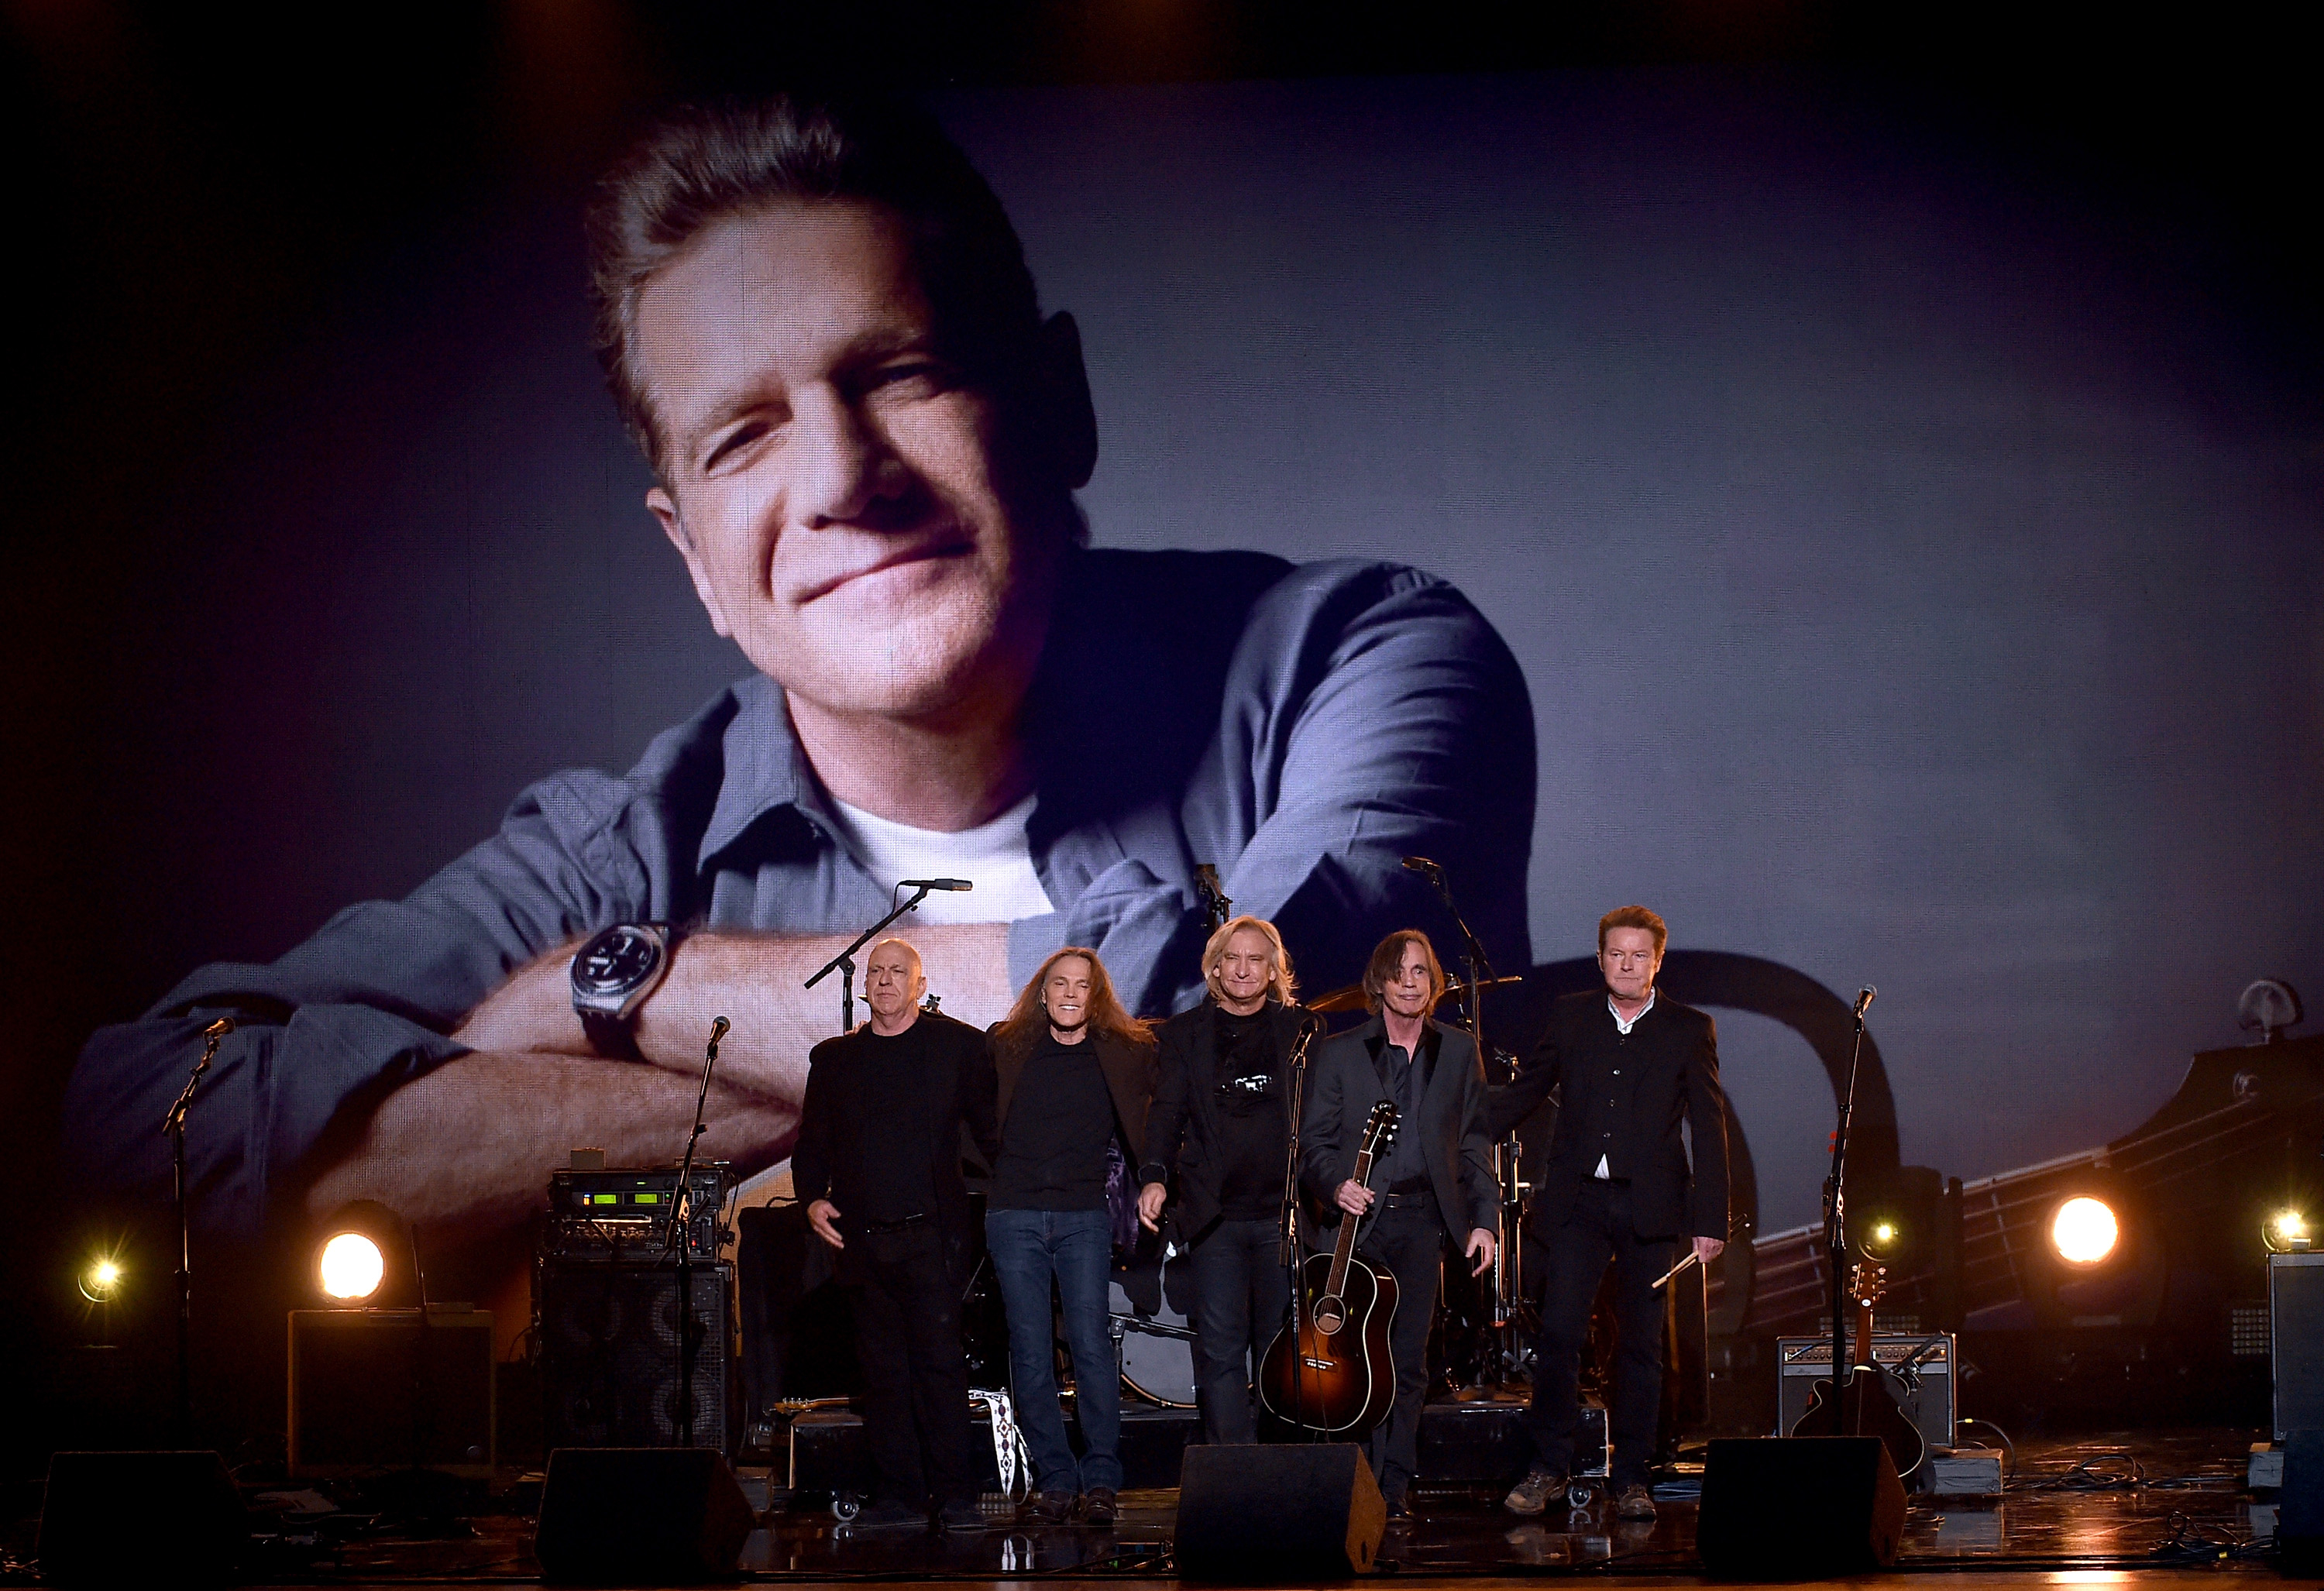 Eagles Enlist Glenn Freys Son For New York LA Concerts